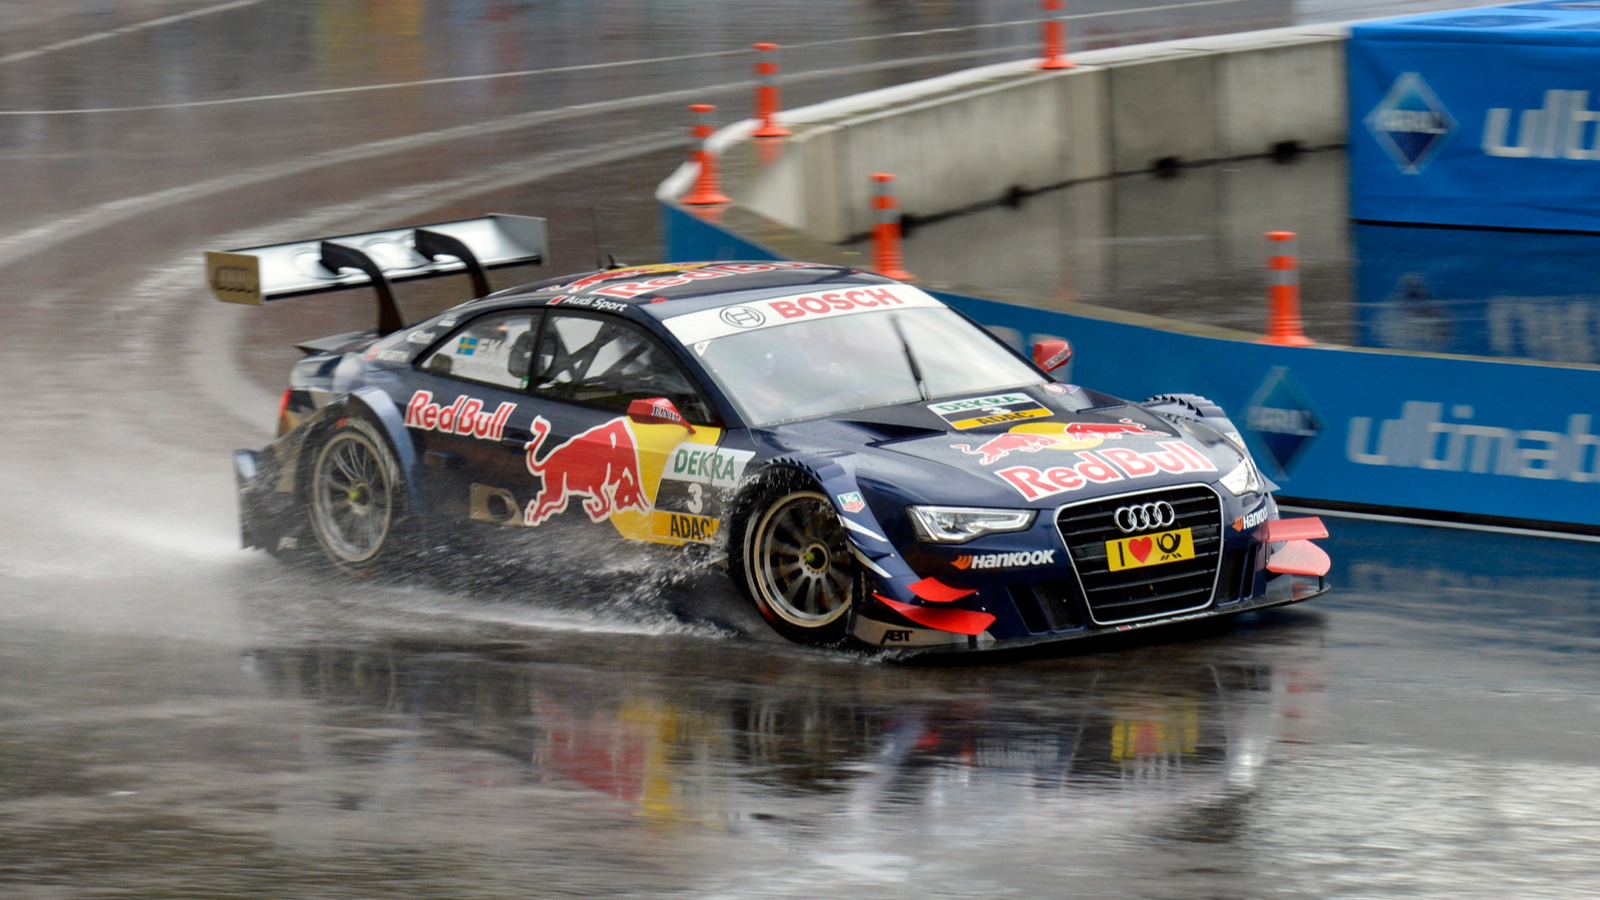 Click here to read Weekend Motorsports Roundup: Dec. 8-9, 2012